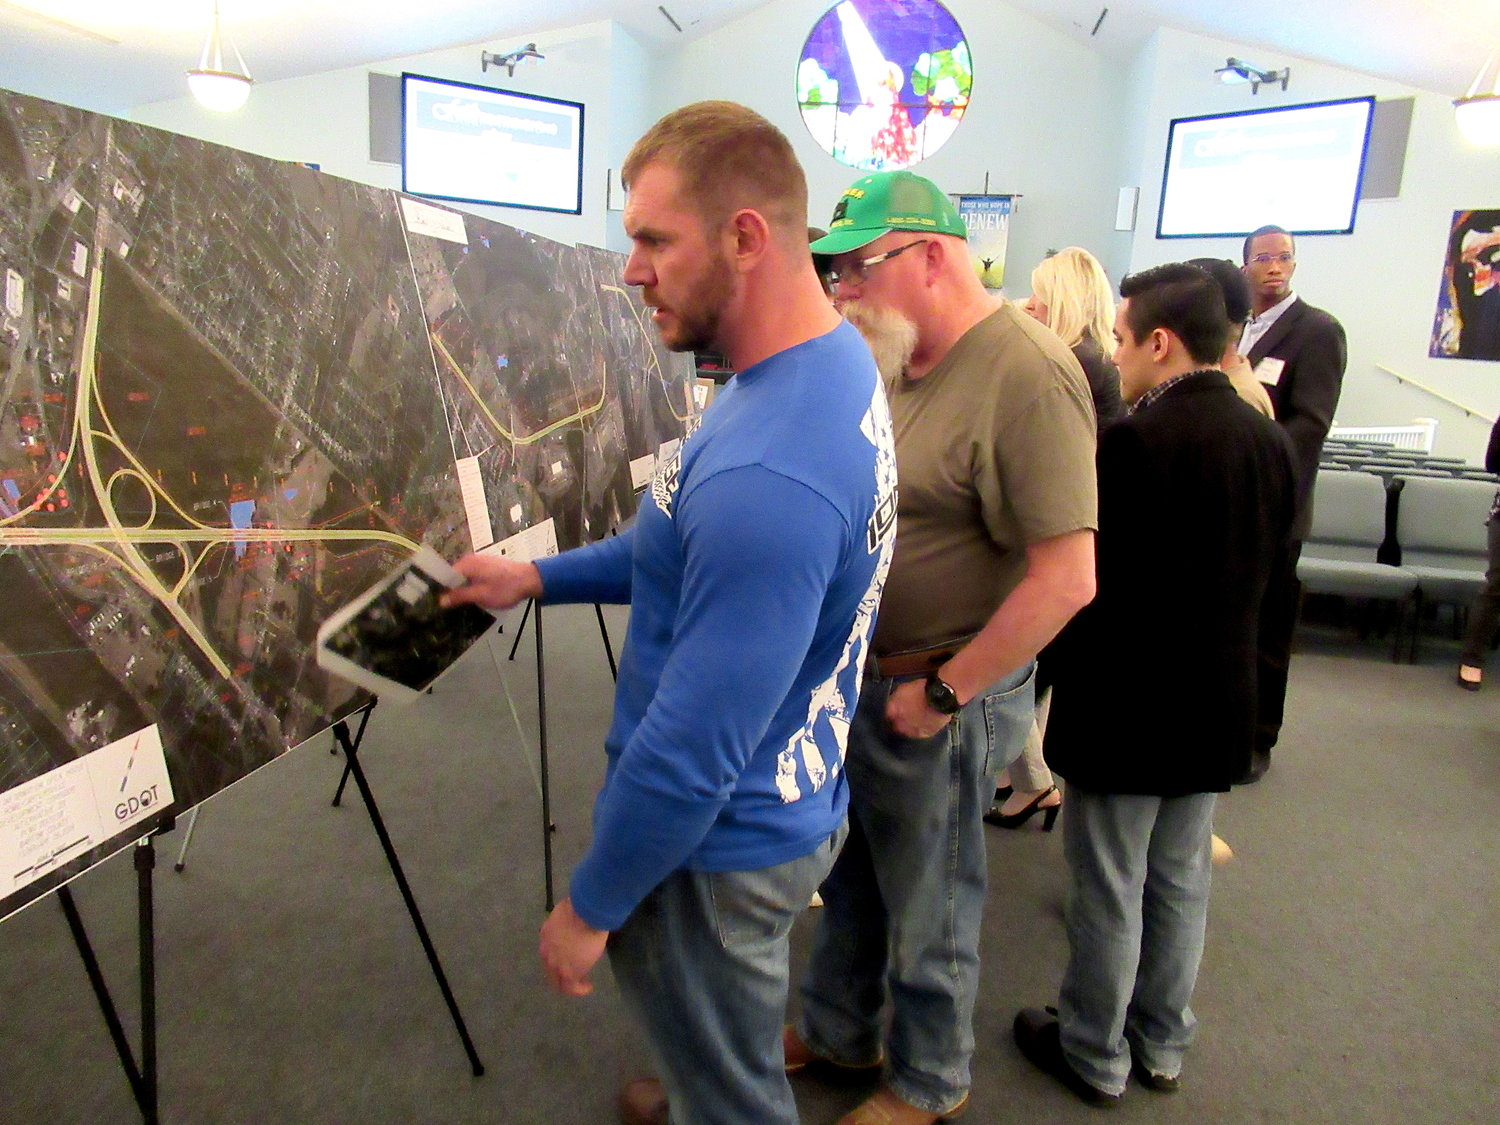 More than 100 people attended a GDOT open house presentation on the Rome-Cartersville Development Corridor at Faith United Methodist Church in Cartersville Tuesday.